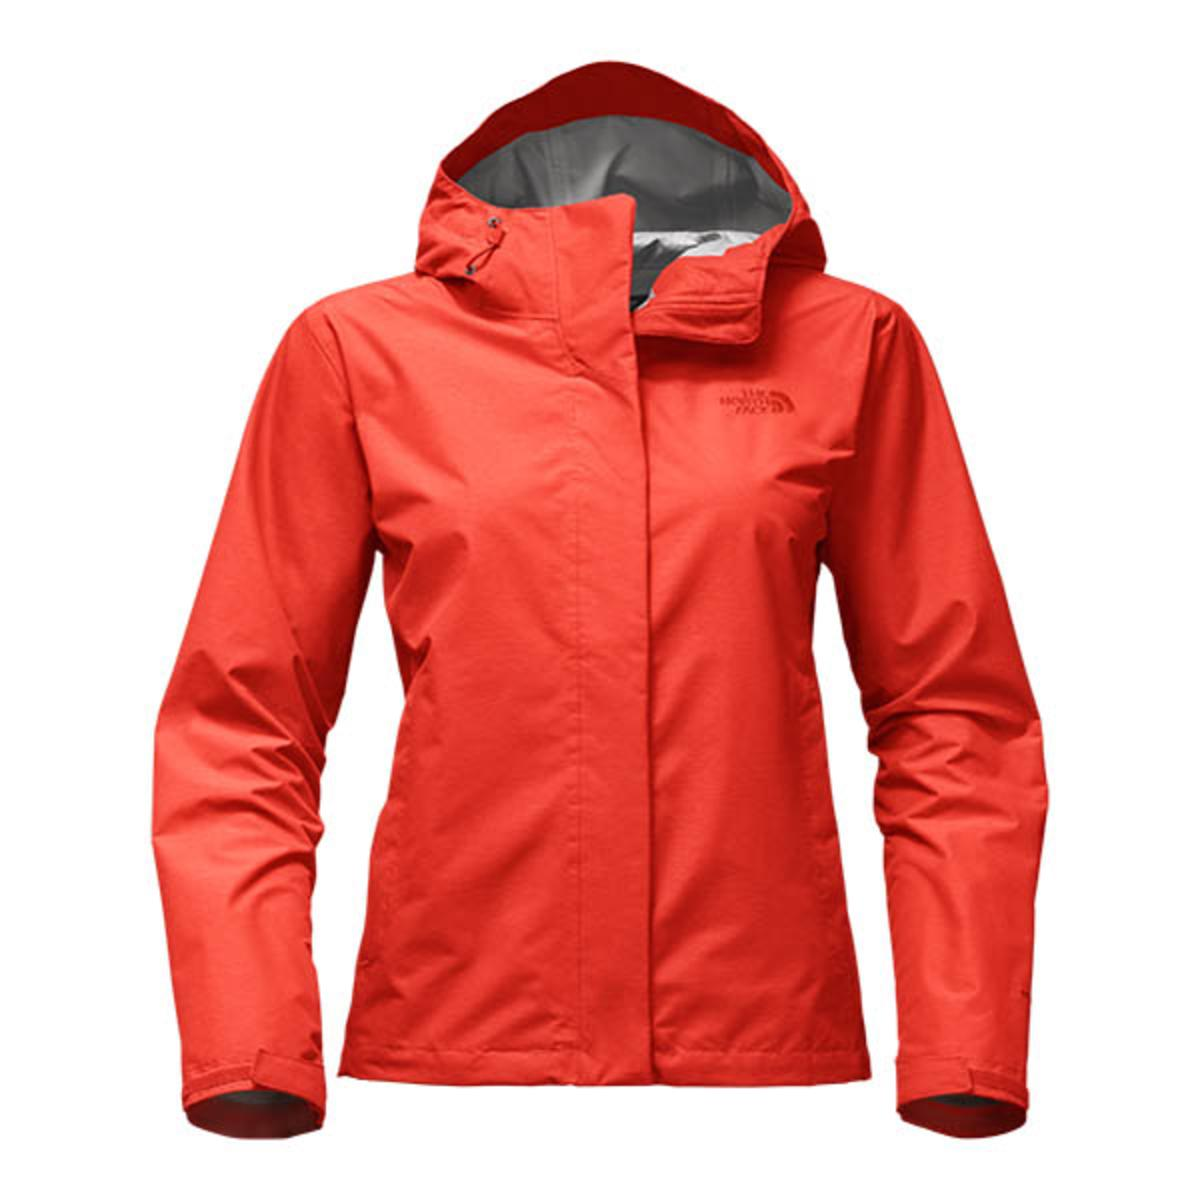 The North Face Women S Venture 2 Jacket Fire Brick Red Heather